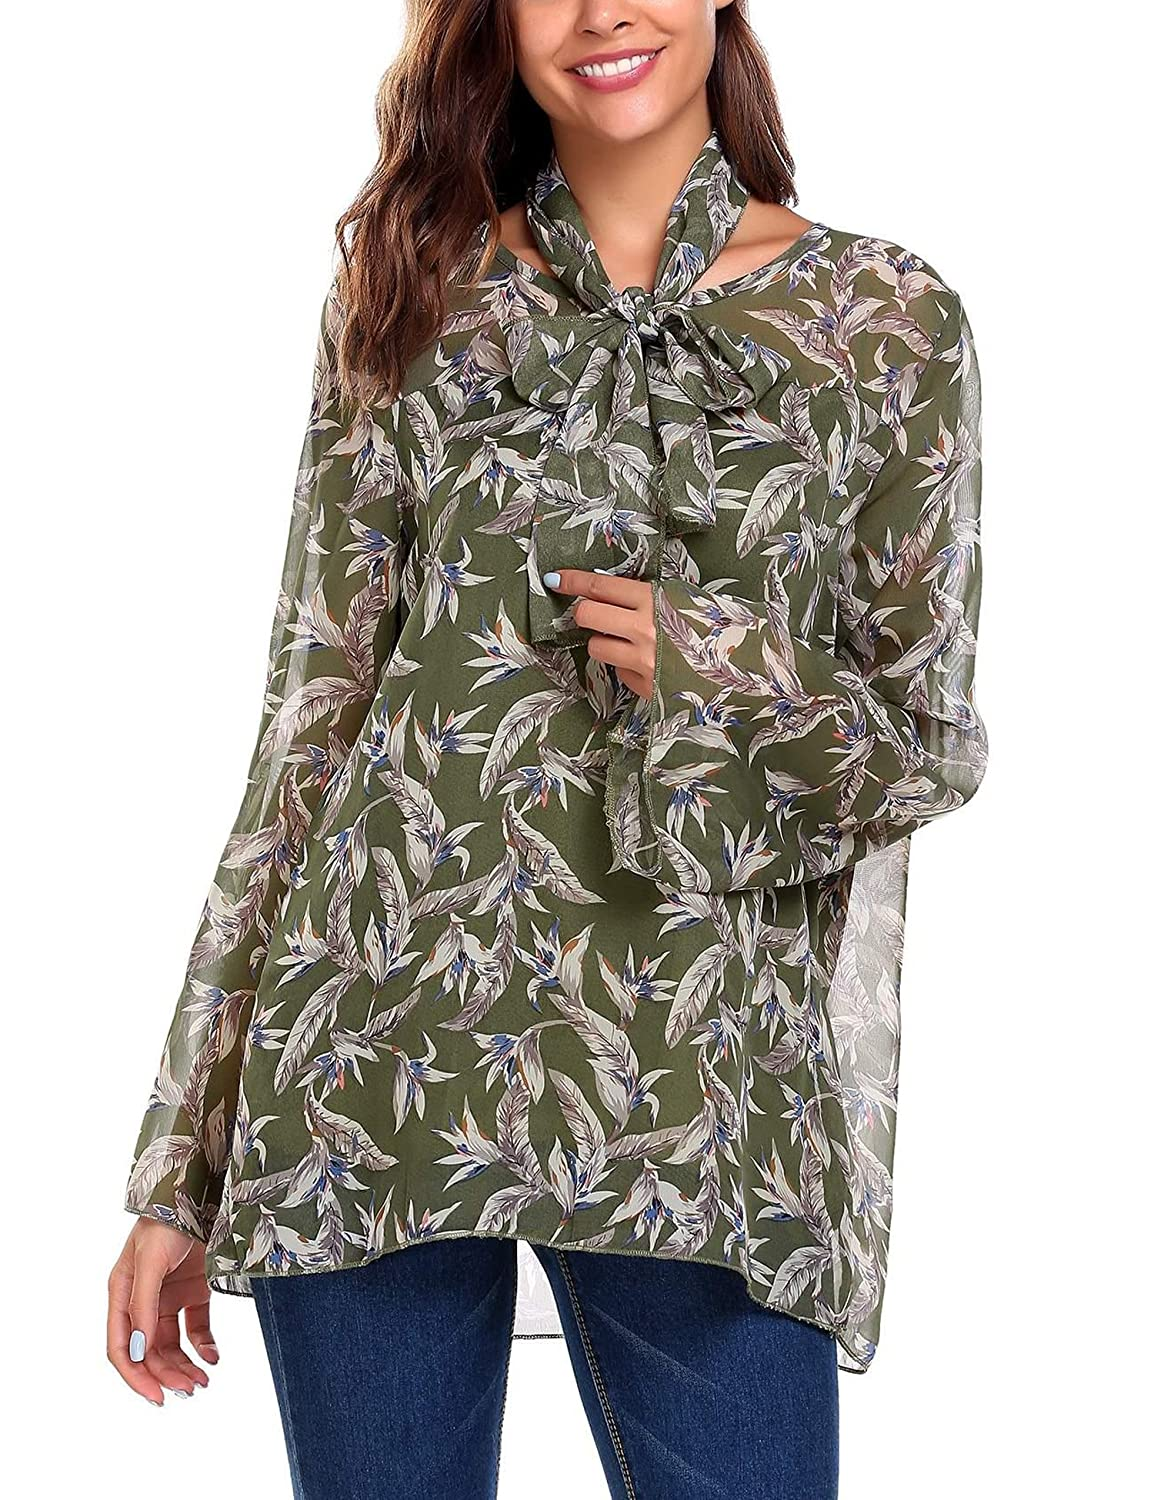 be8b2c0c693a6 Elever Womens Casual See Through Floral Long Sleeve Chiffon Shirt Blouse  Tops at Amazon Women's Clothing store: